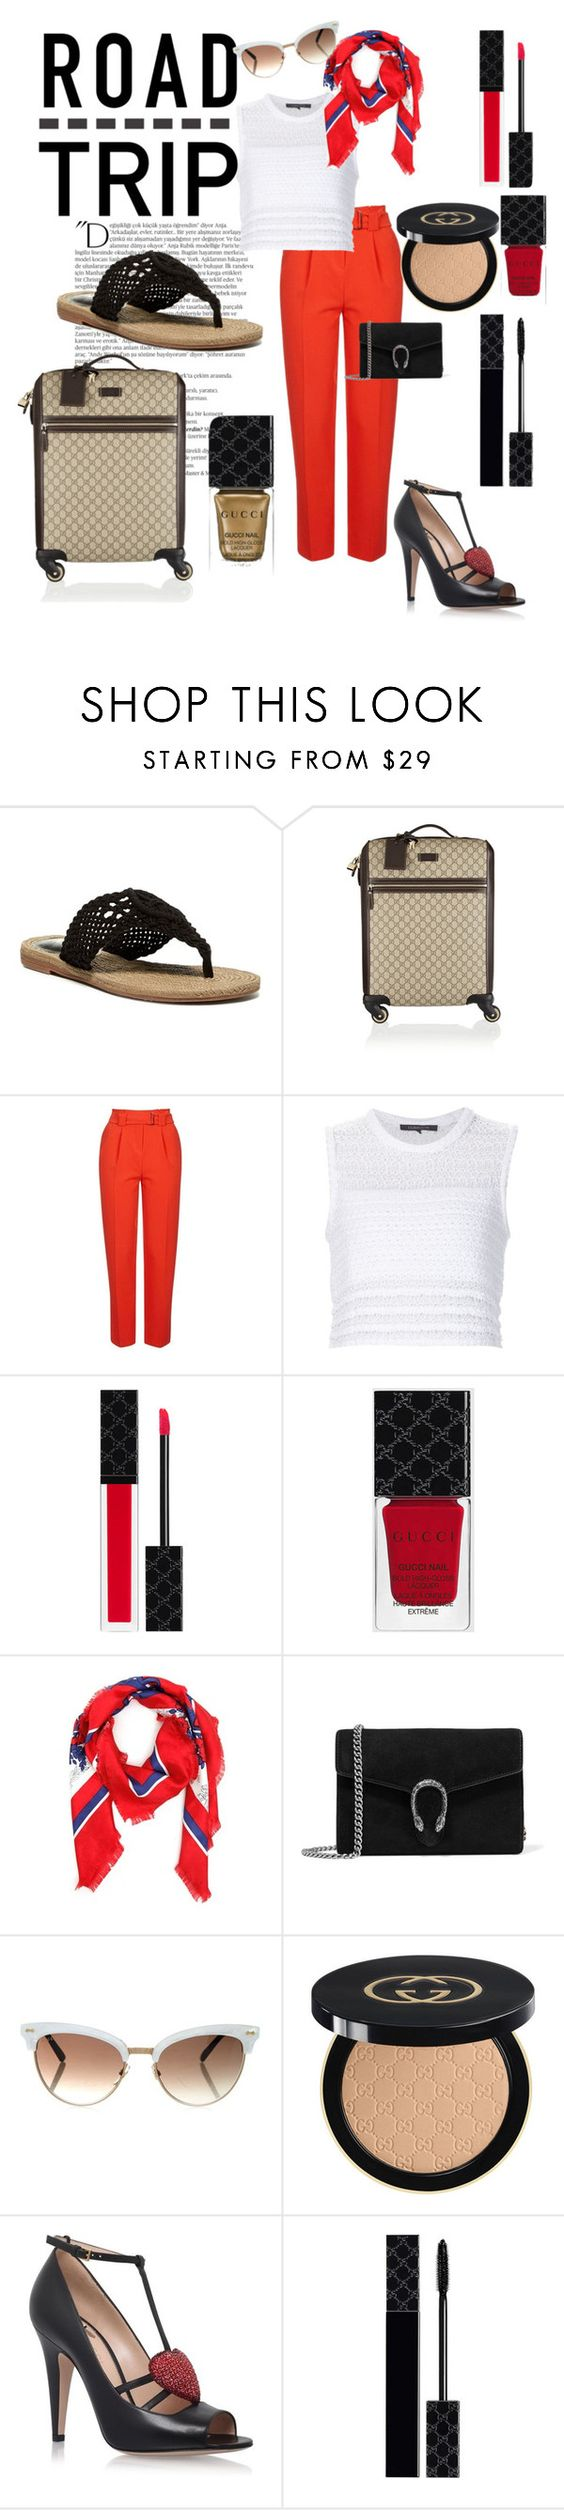 """""""Gucci"""" by teaganhunter ❤ liked on Polyvore featuring Balmain, MIA, Gucci, Topshop, Thakoon and roadtrip"""